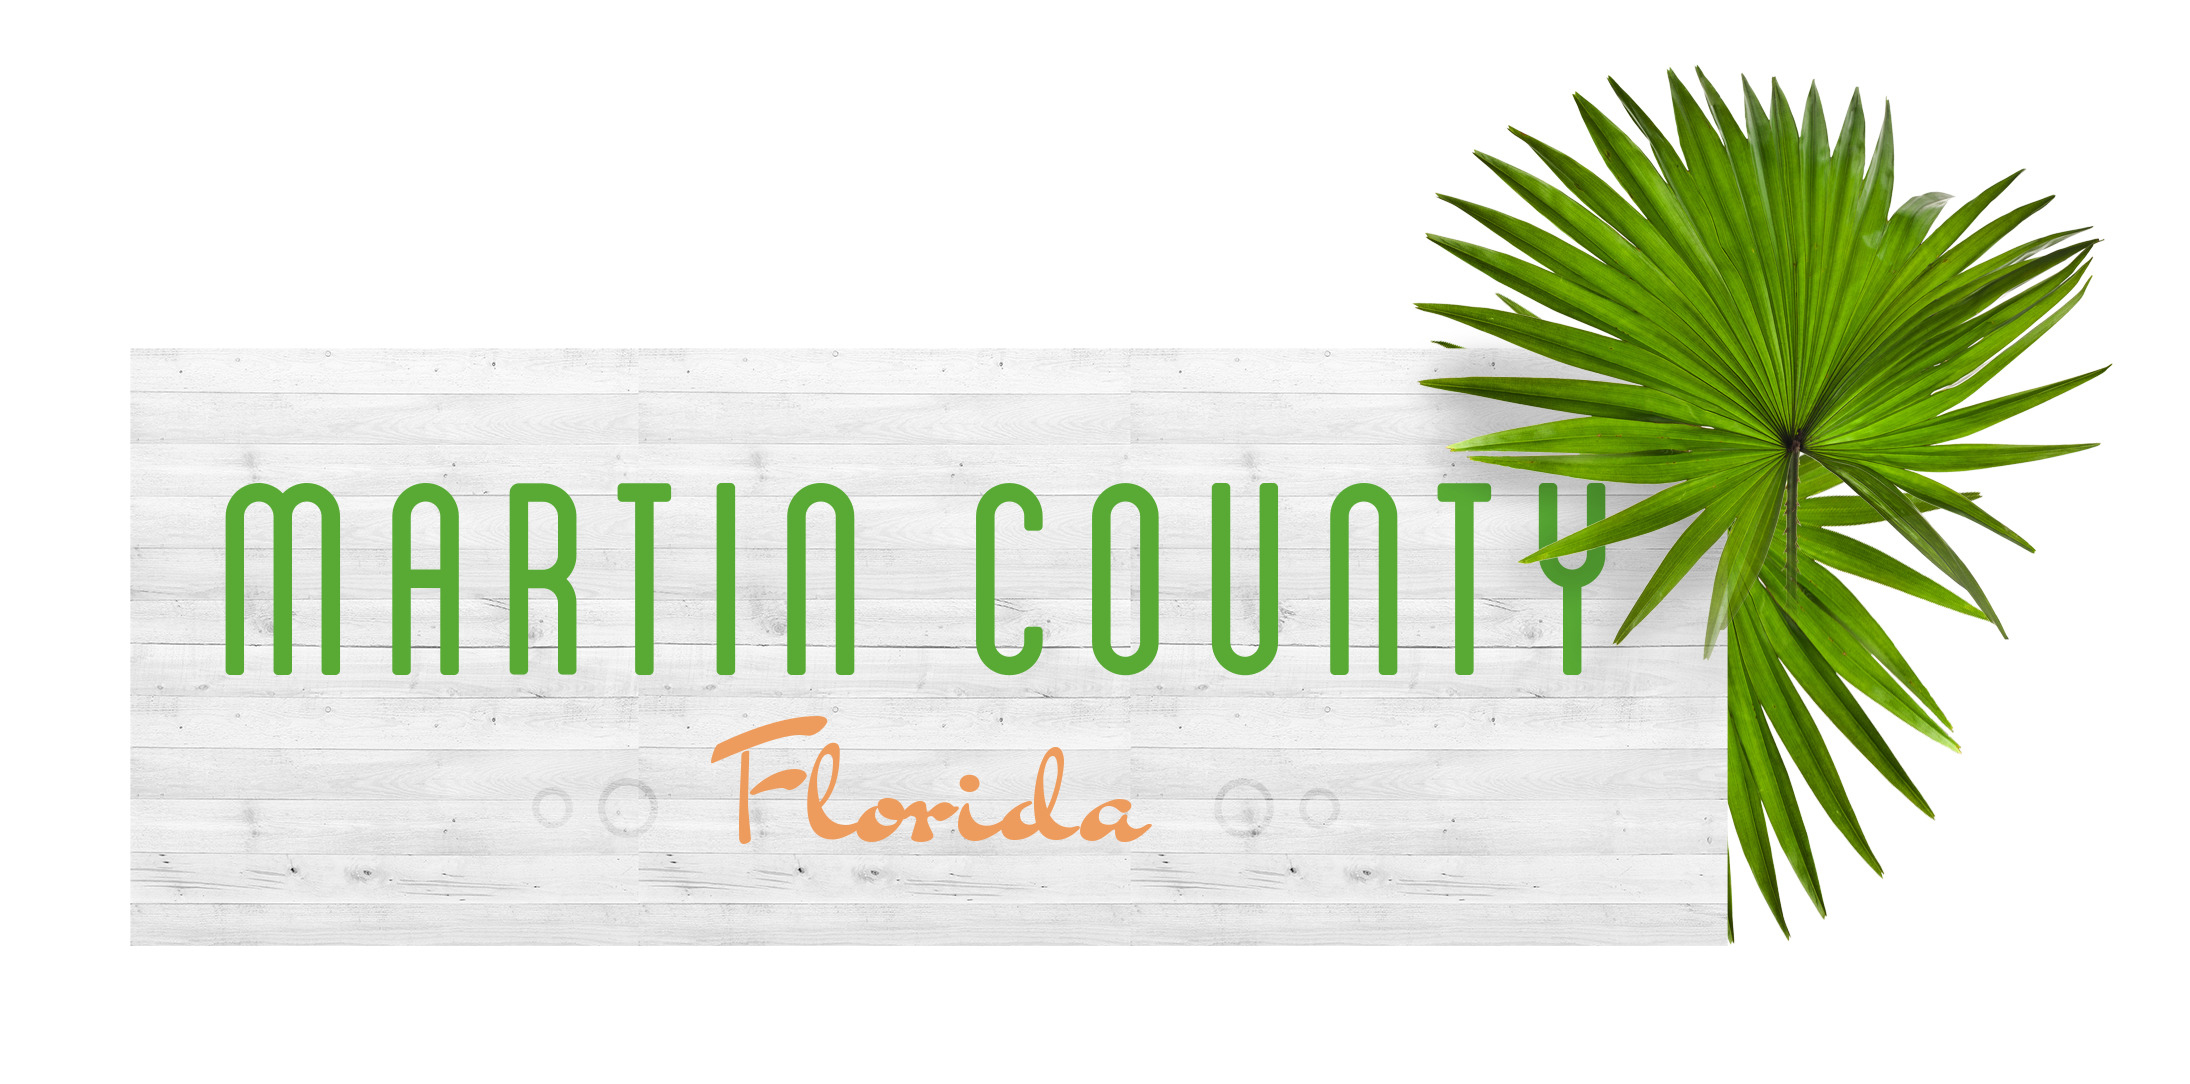 Discover Martin County